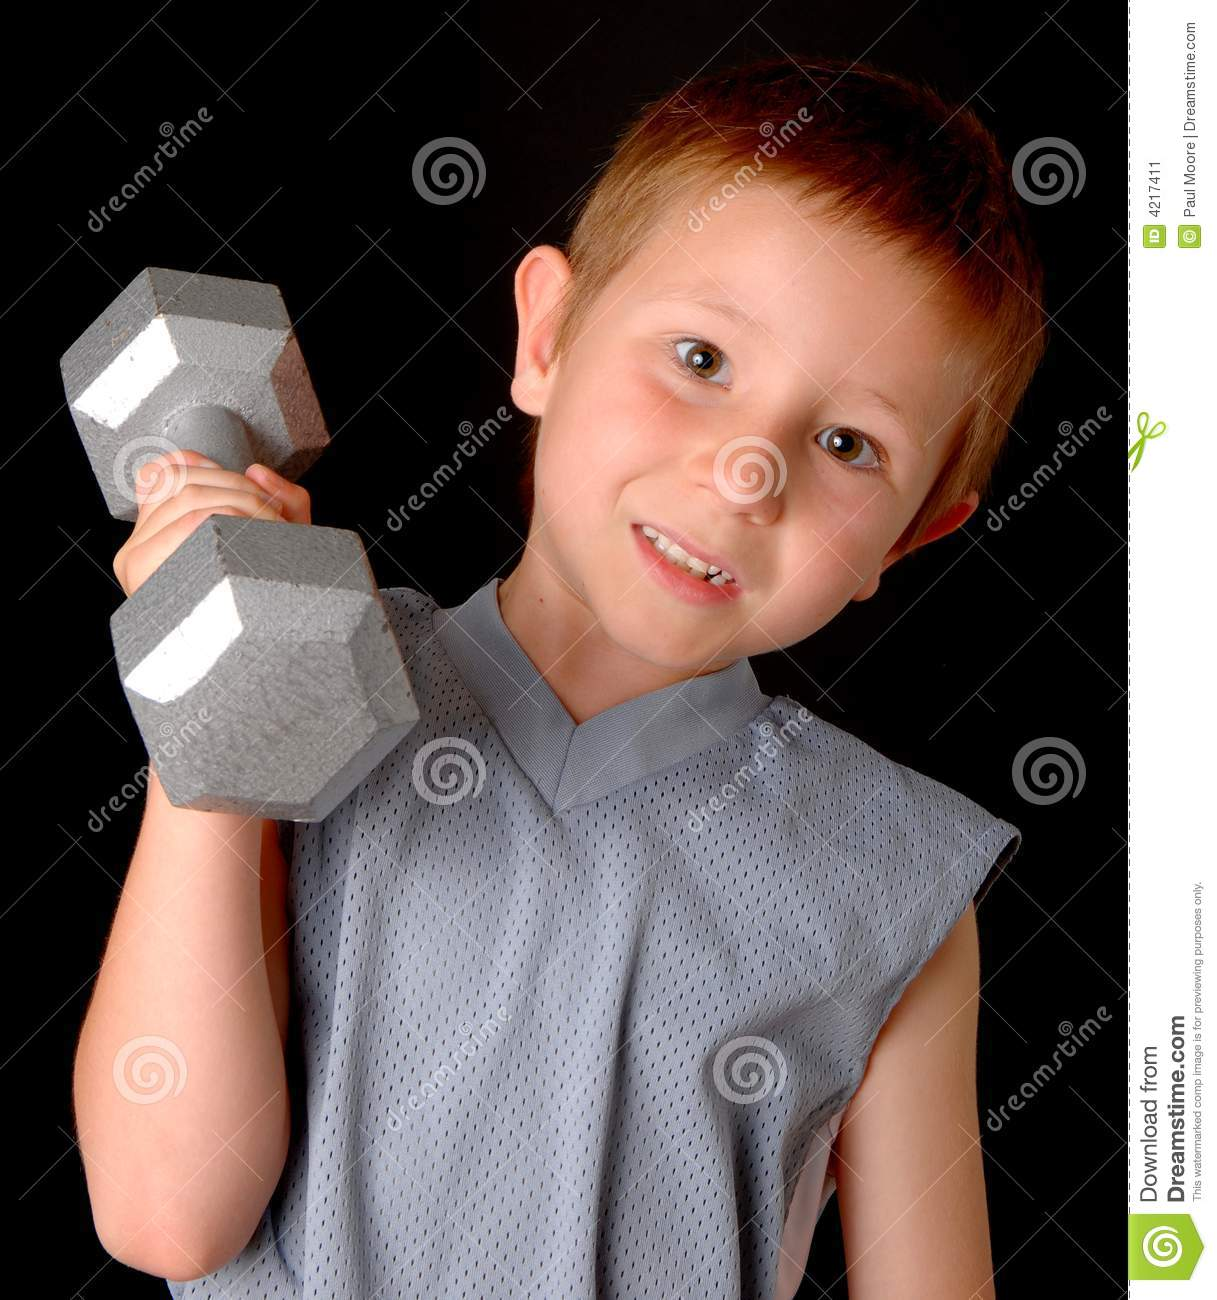 Health And Fitness Boy Stock Image - Image: 4217411